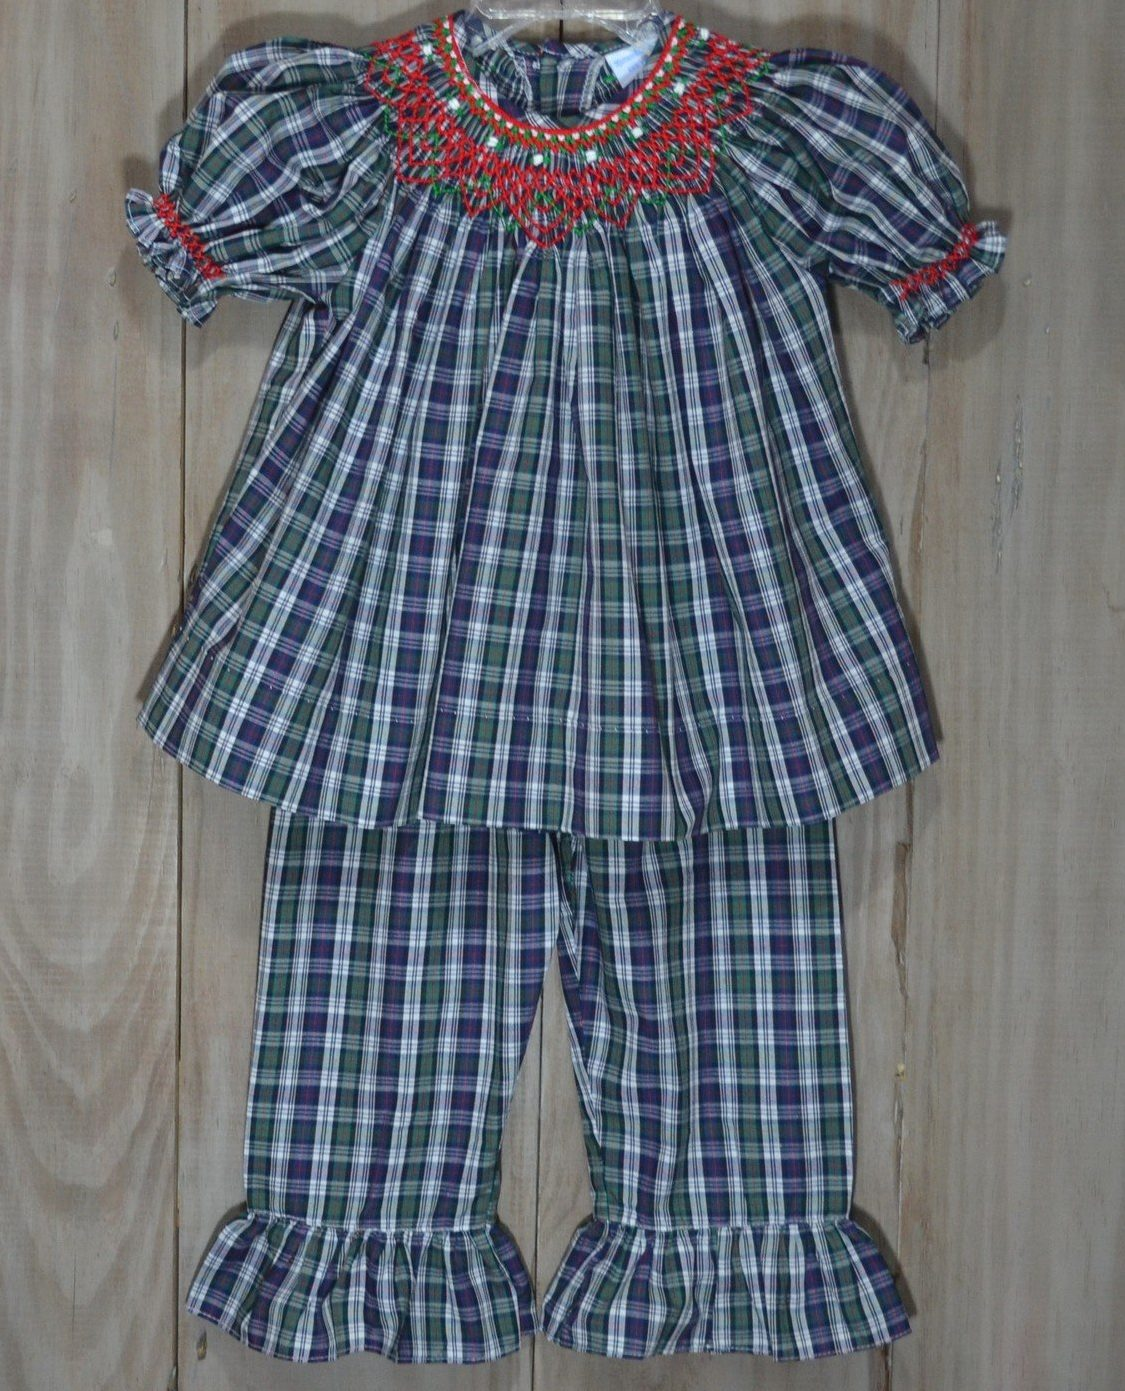 2907e64189c2 Navy and green plaid pants set with red and green smocking. Perfect outfit  to play